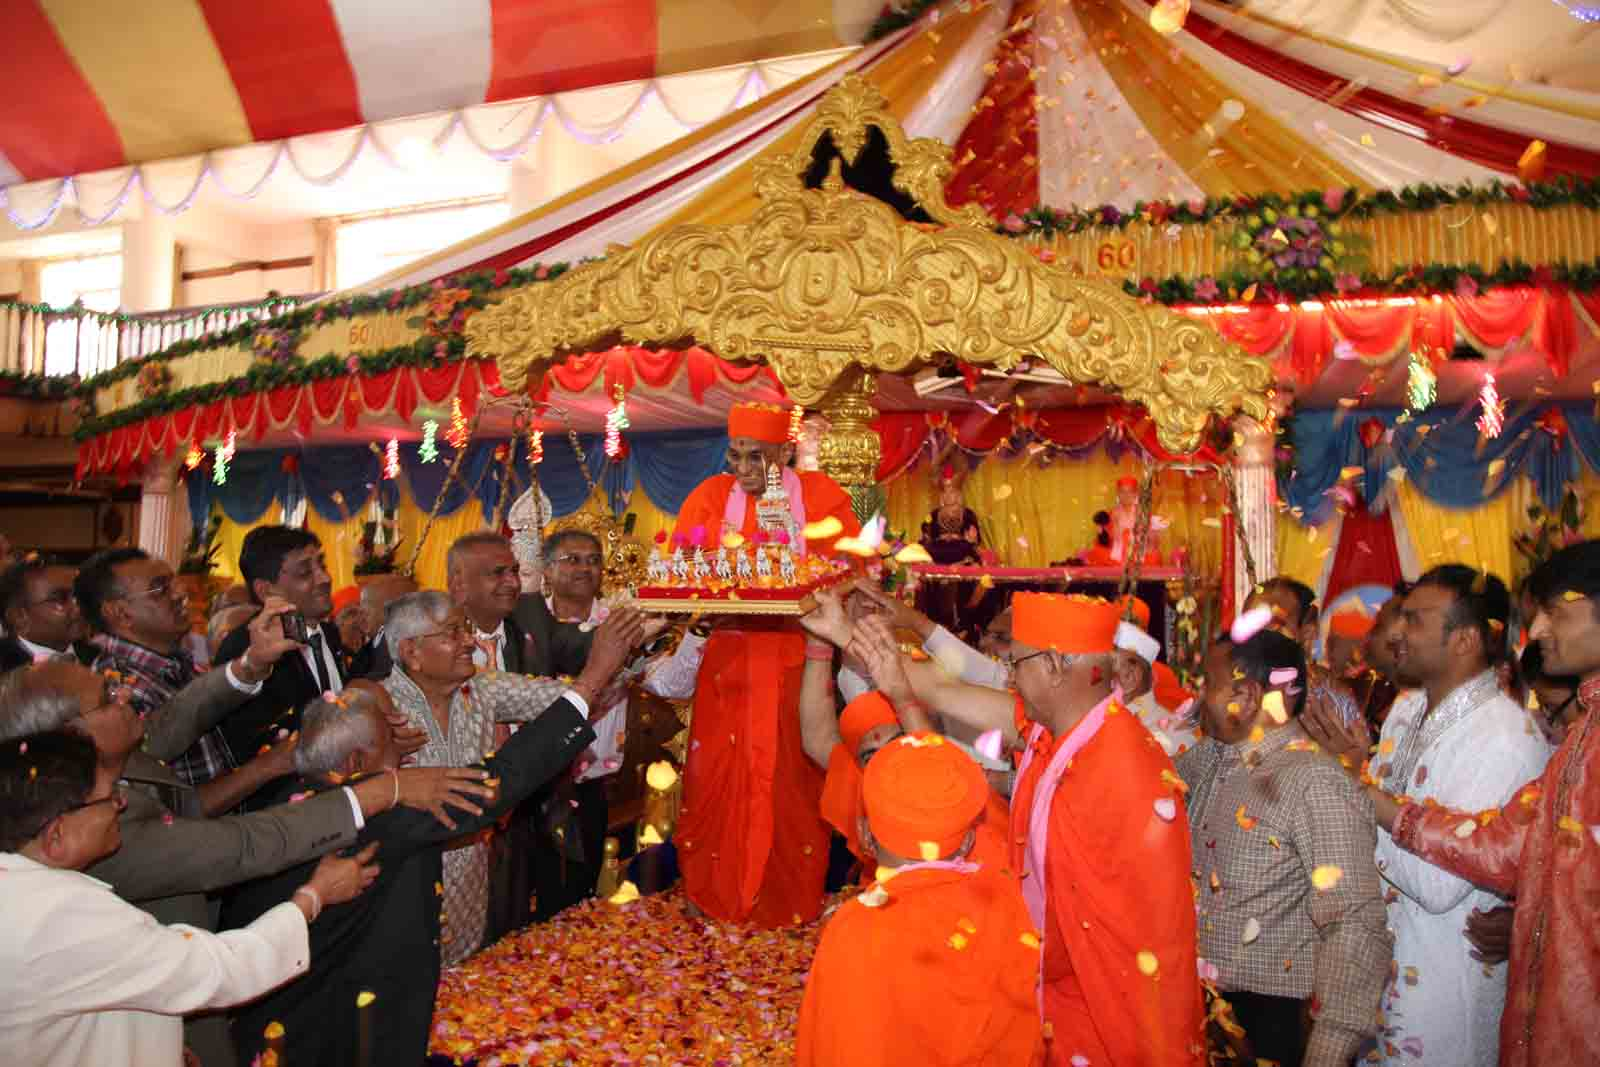 A silver chariot with horses presented to Acharya Swamishree by the devotees